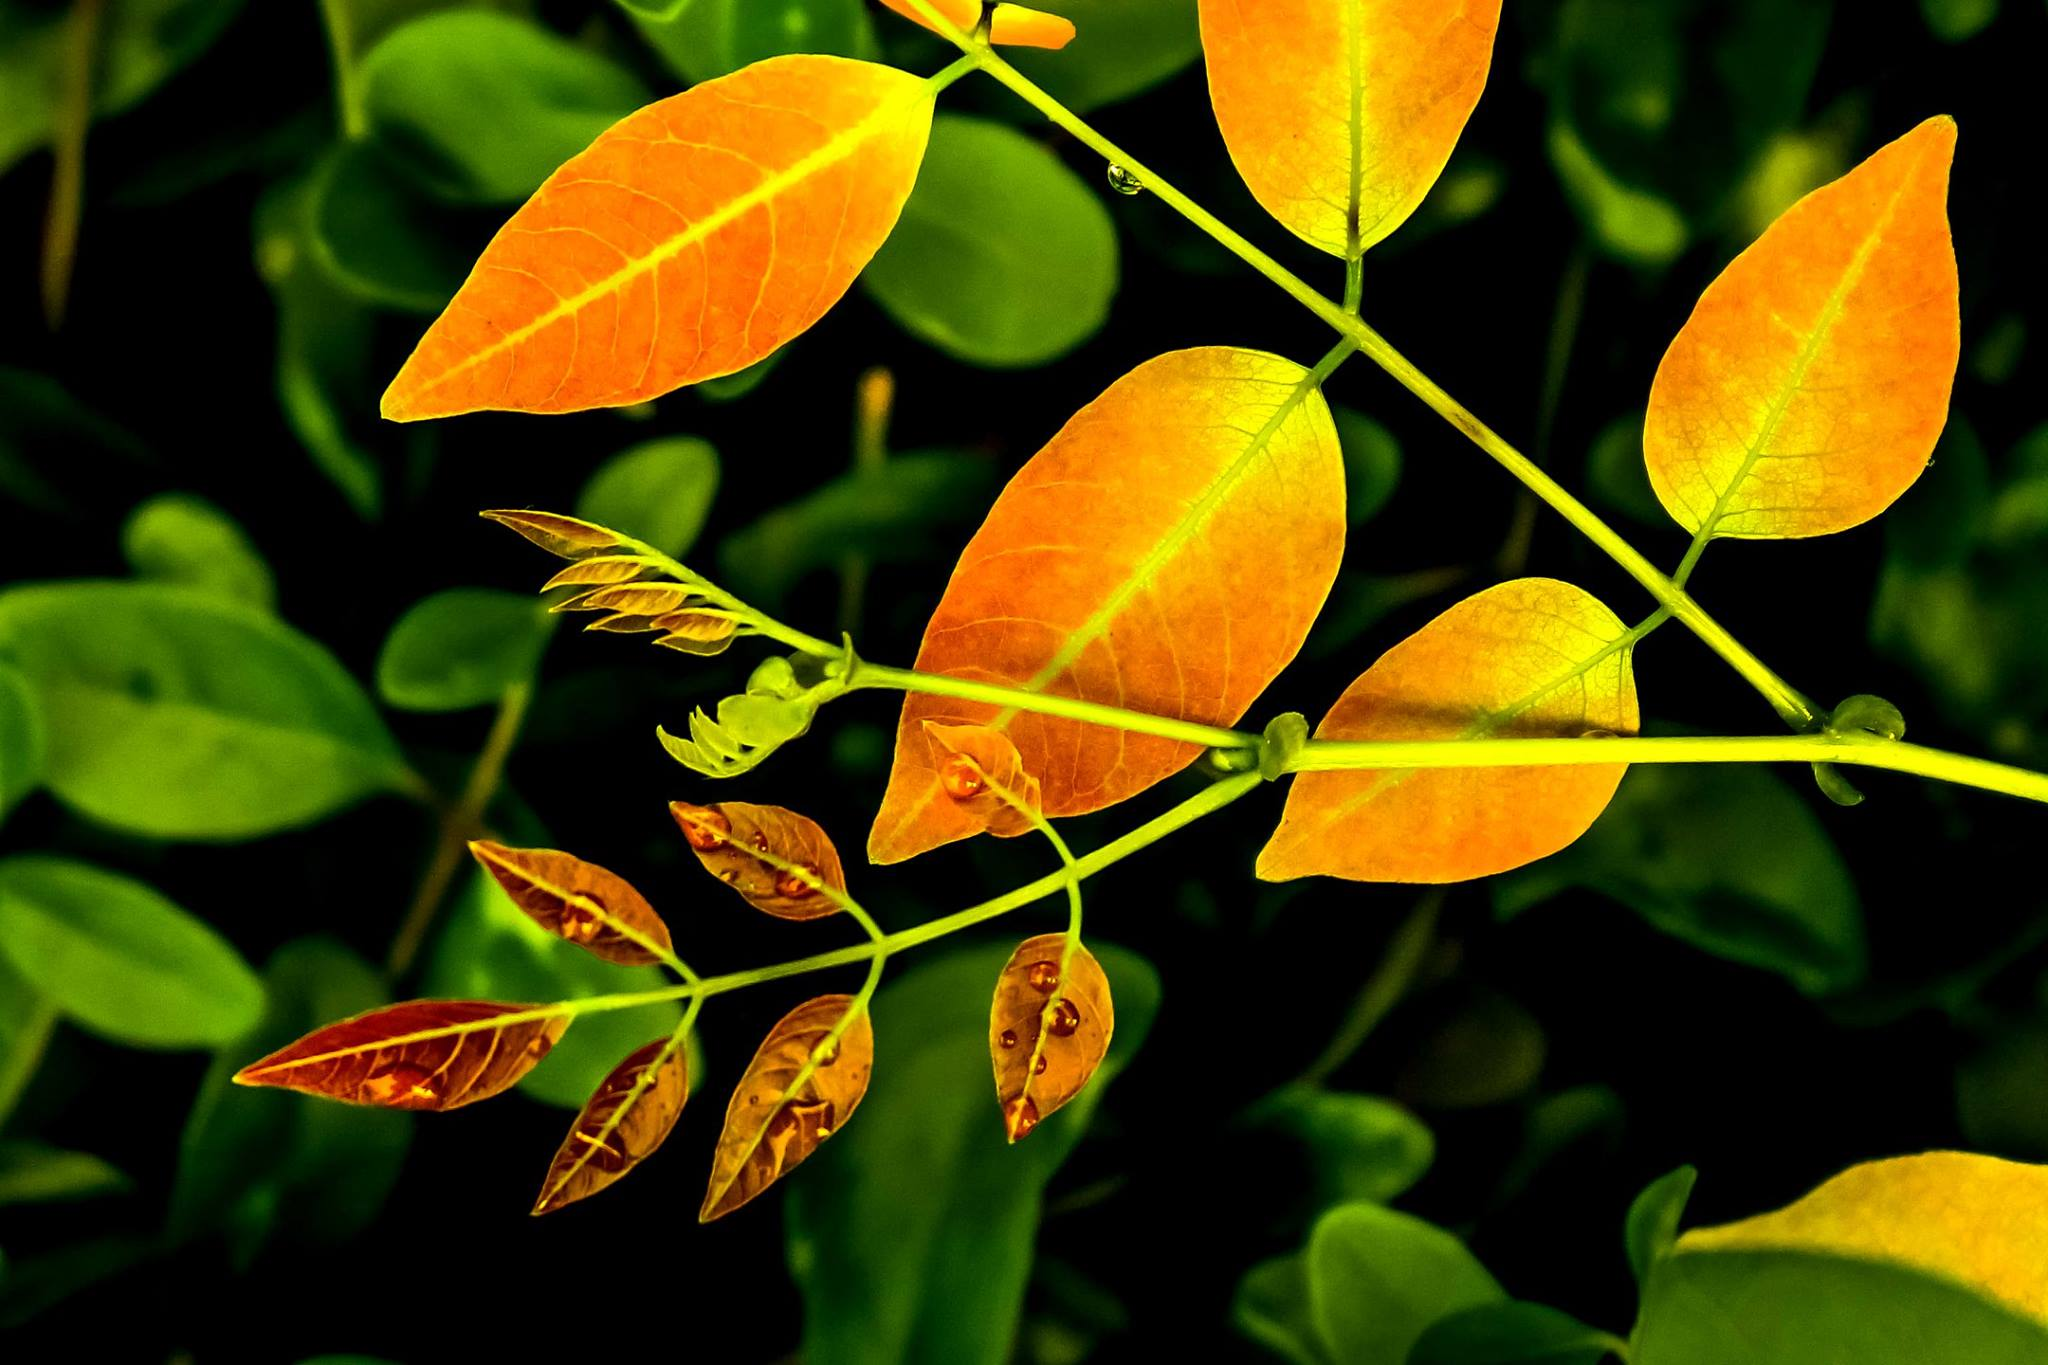 This is an artistic, close-up shot of leaves in multiple bright colours. In the forefront are a few deep brown and young leaves on a slender stem; the stem itself branches out from a larger stem with golden yellow leaves. Water droplets can be seen on the stems and the young leaves. In the background is a blurred mass of green leaves interspersed with dark, unlit spaces in between. The contrast in colours seems to symbolize hope and a blend of the 'new' emerging from the 'old' over time. Photo credit: Vahista Dastoor